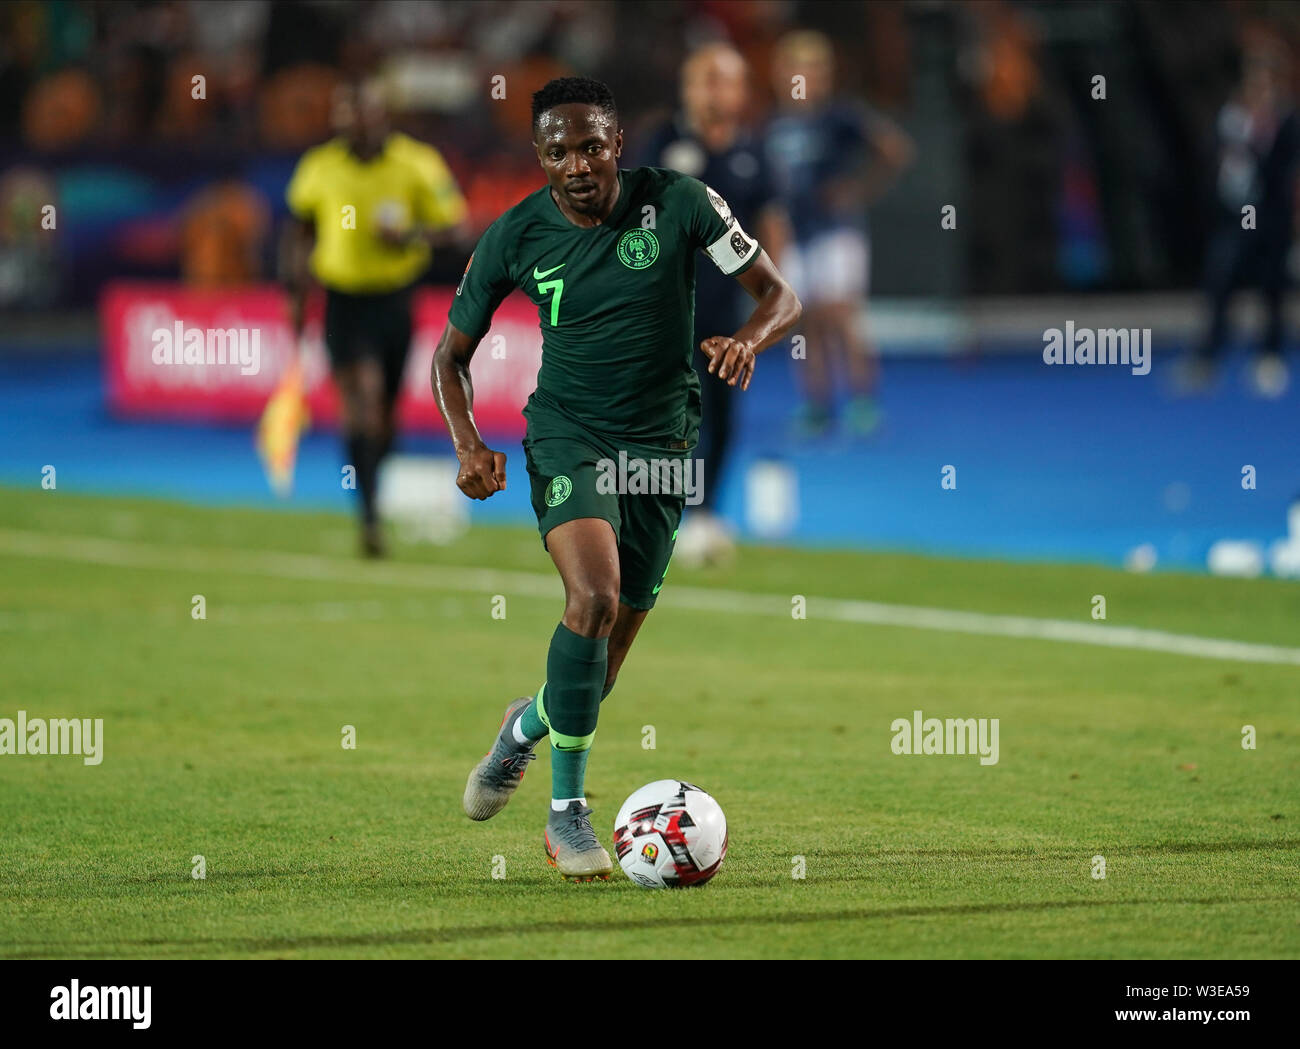 Cairo, Algeria, Egypt. 14th July, 2019. FRANCE OUT July 14, 2019: Ahmed Musa of Nigeria during the 2019 African Cup of Nations match between Algeria and Nigeria at the Cairo International Stadium in Cairo, Egypt. Ulrik Pedersen/CSM/Alamy Live News - Stock Image